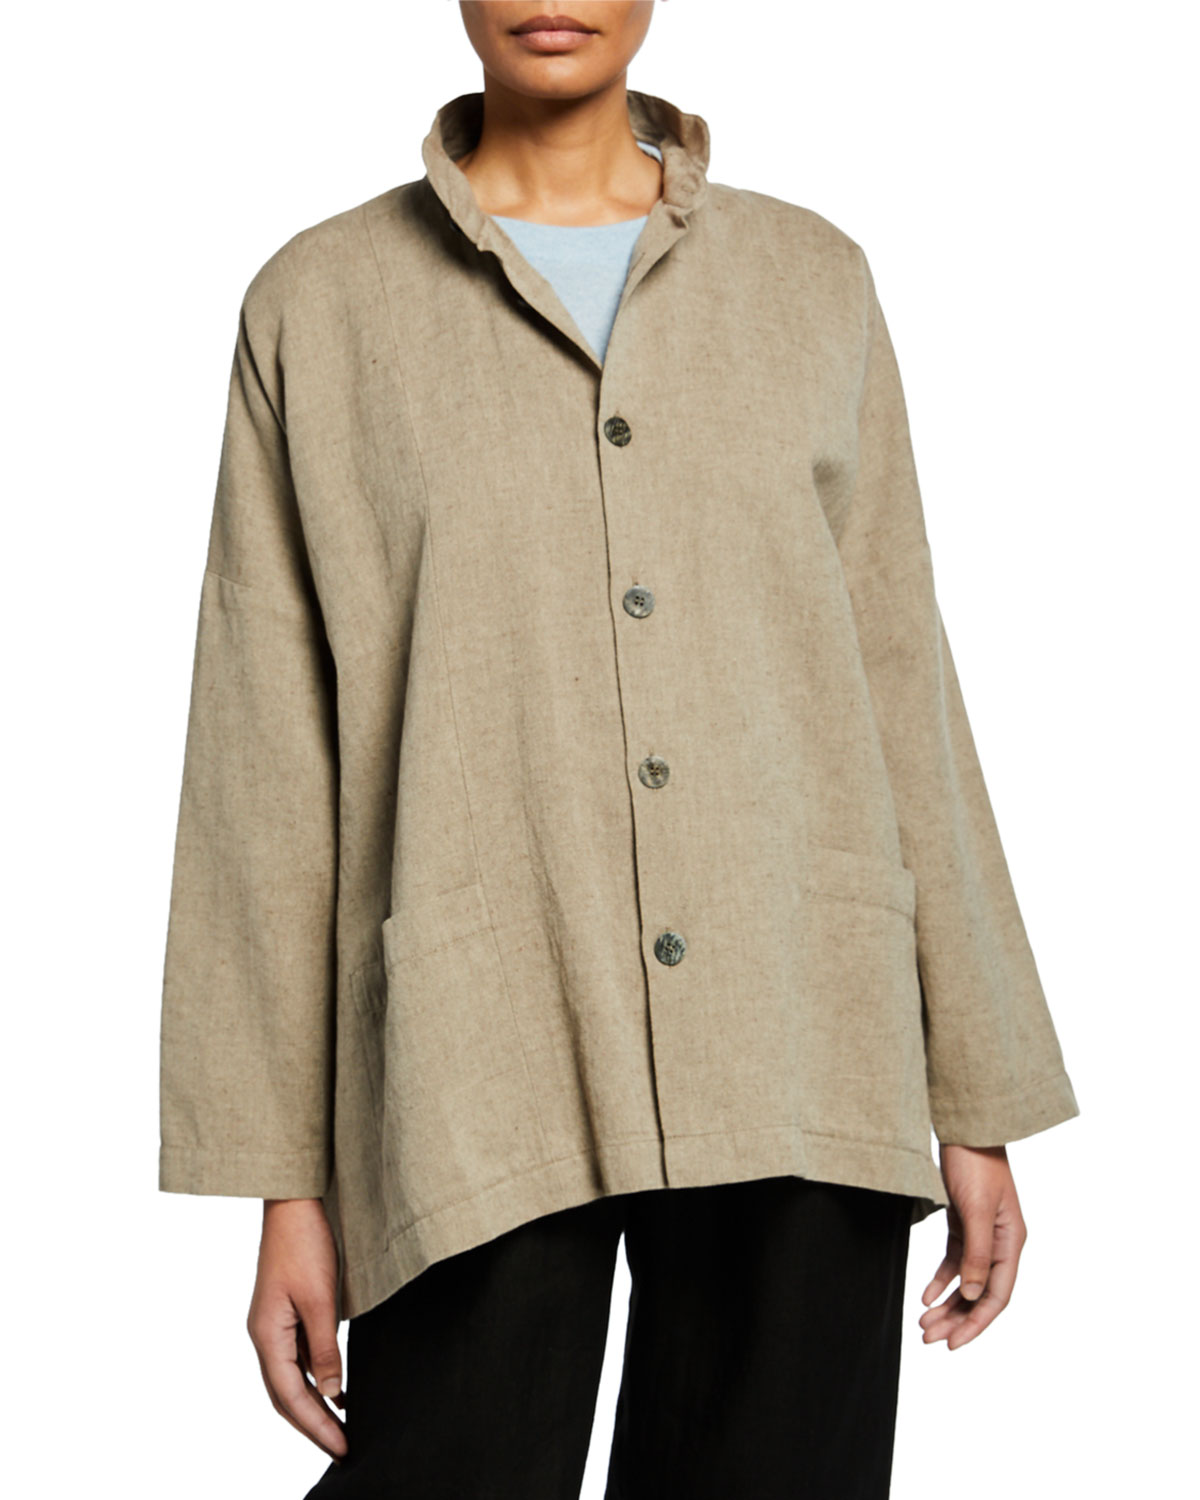 Eskandar Jackets SEAMED LINEN-COTTON HIGH-LOW JACKET